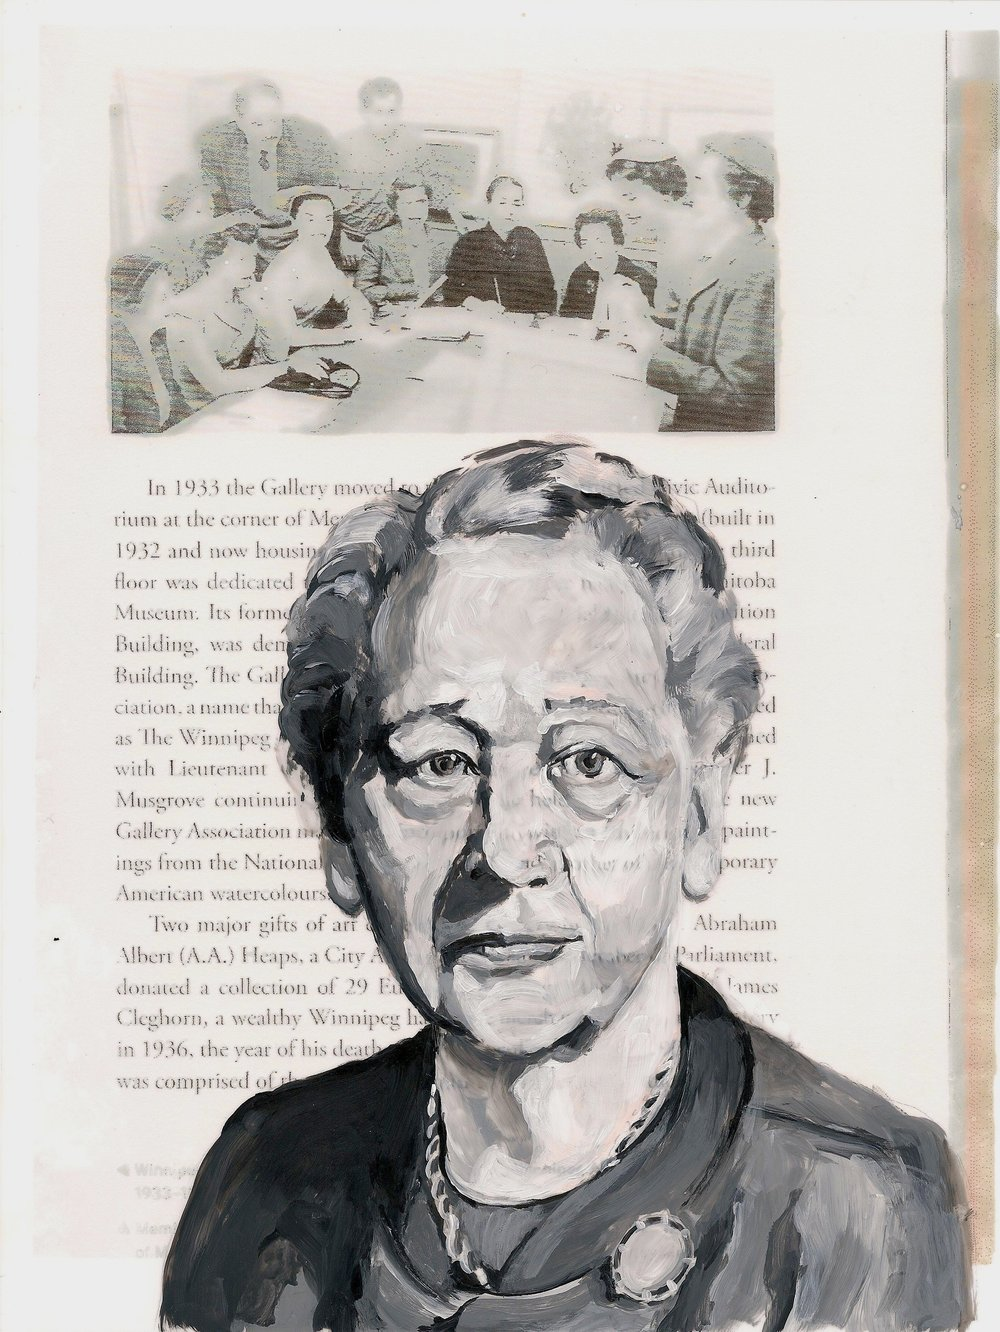 "Women Of Wag: Muriel Richardson and The Women's Committee, Acrylic and inkjet on mylar, 2012, 11"" x 8.5""."